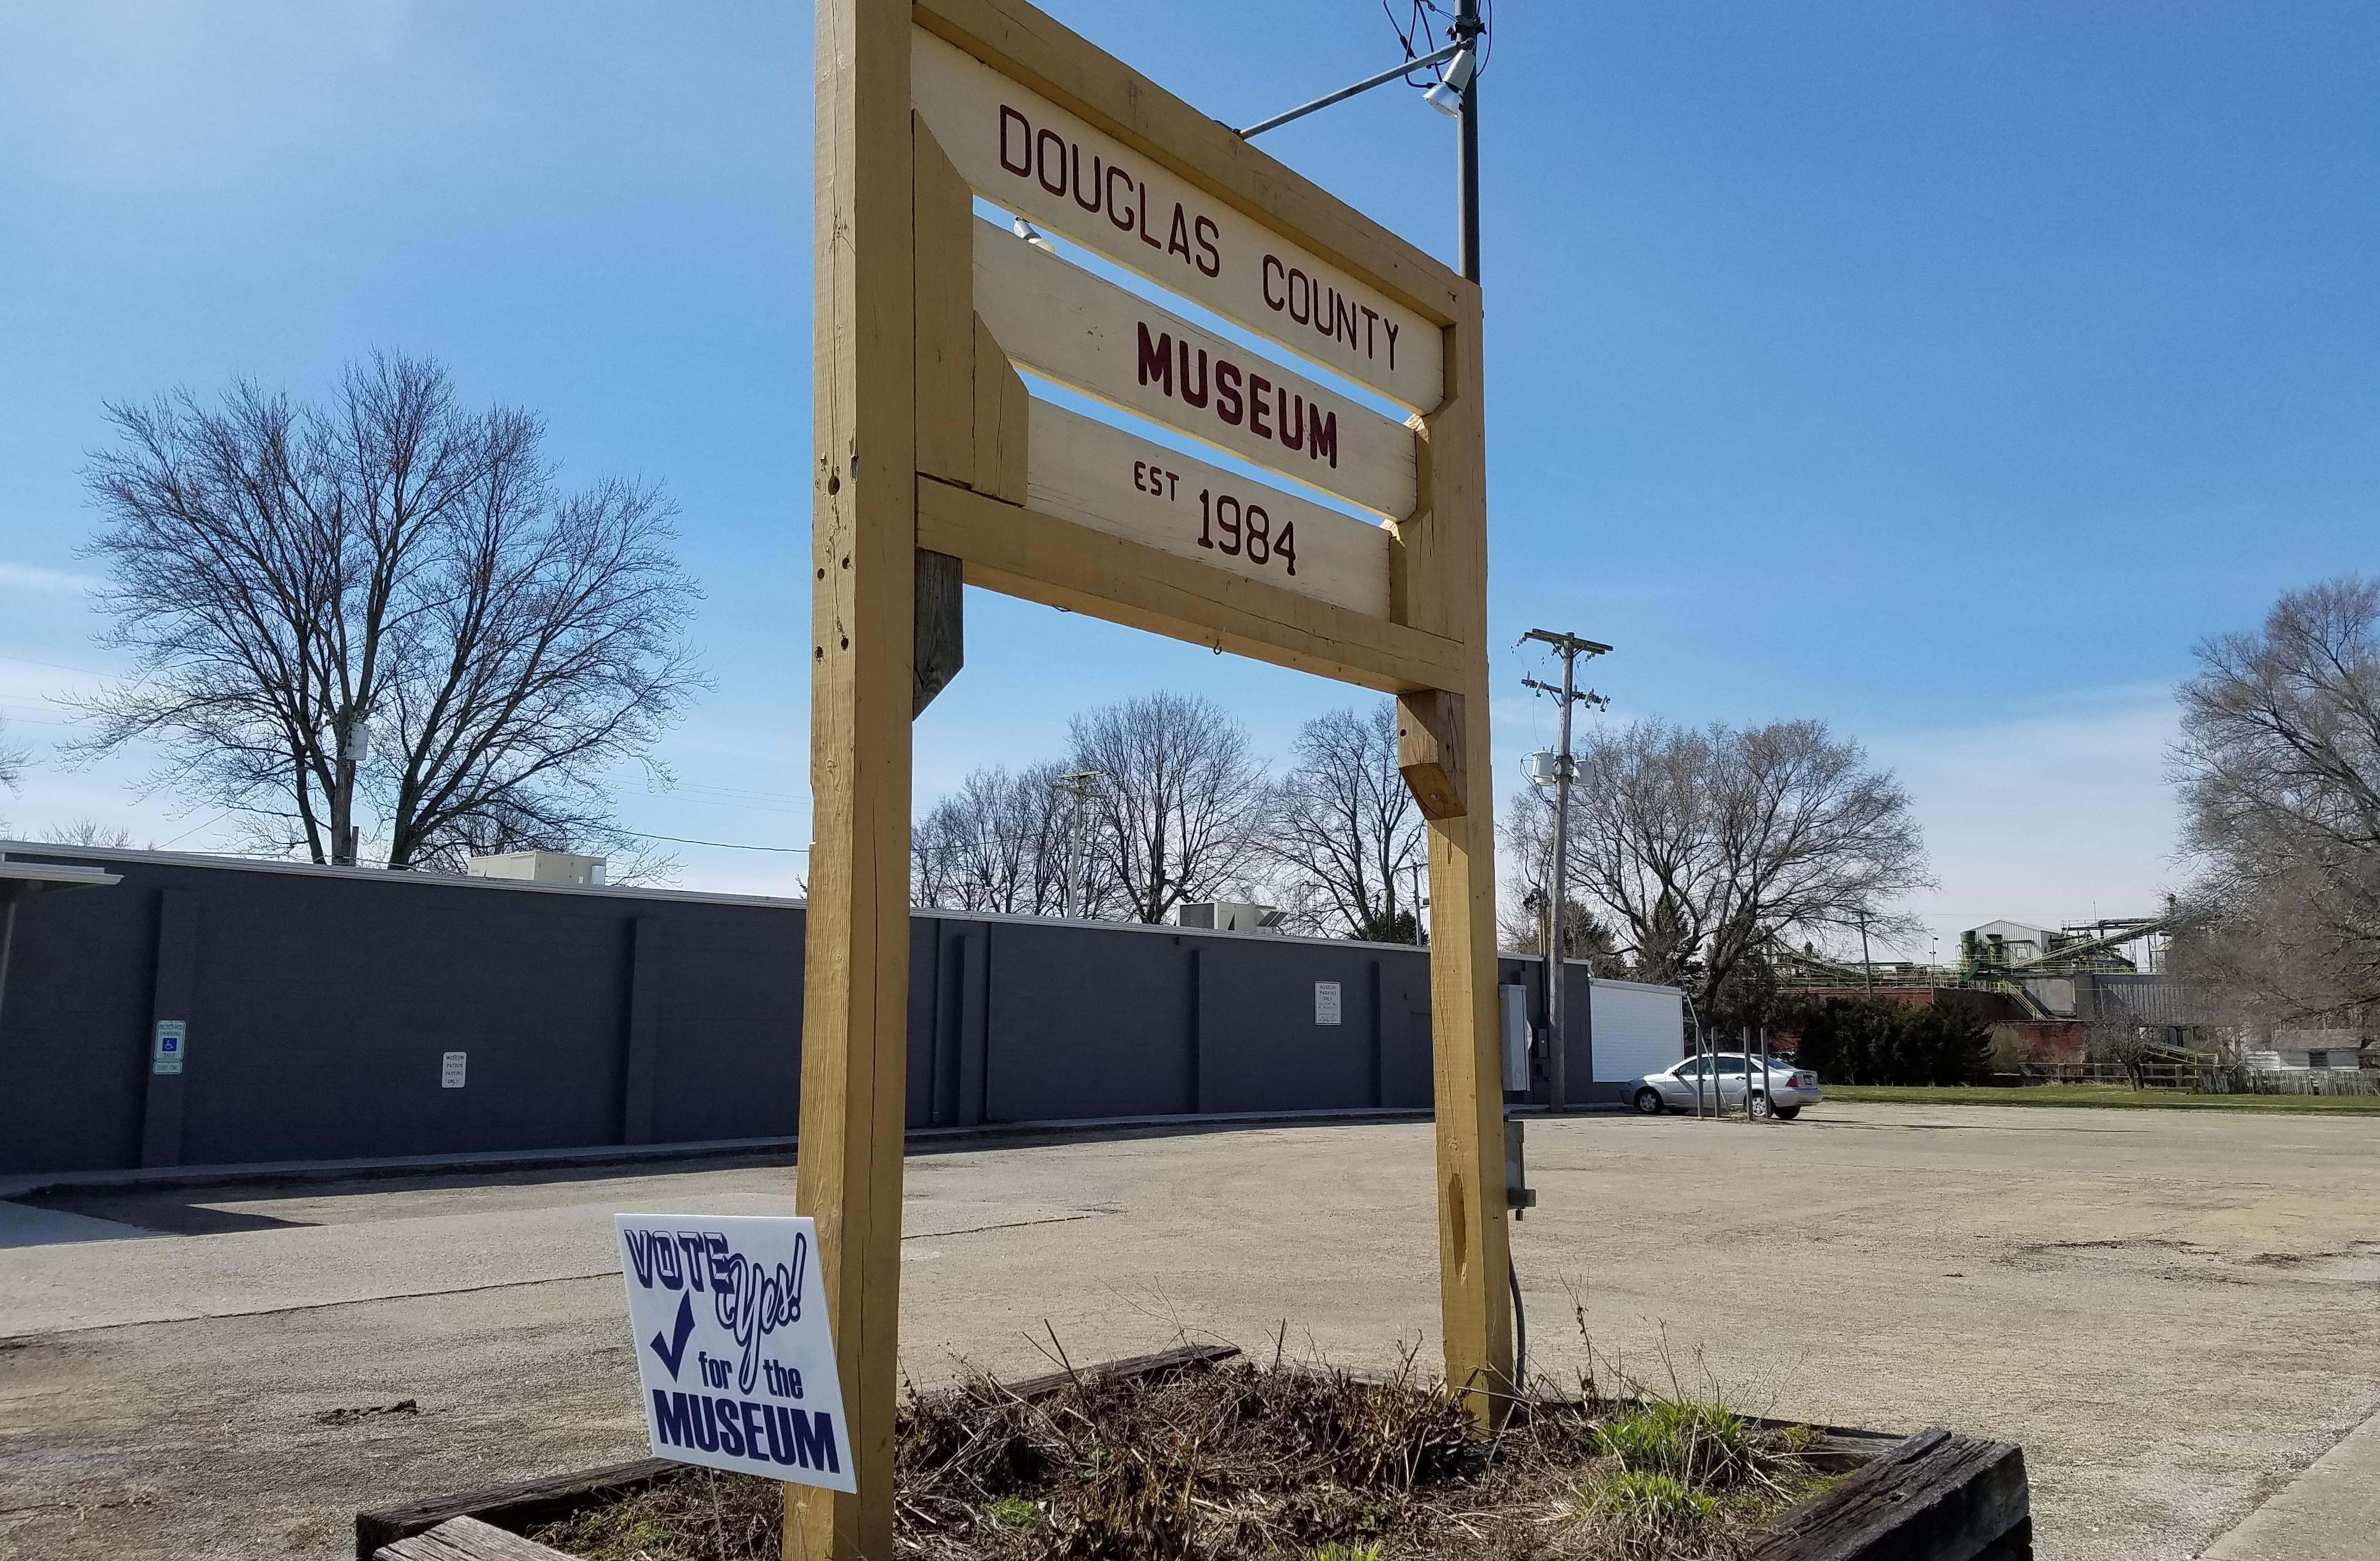 Sign for the Douglas County Museum in Tuscola.